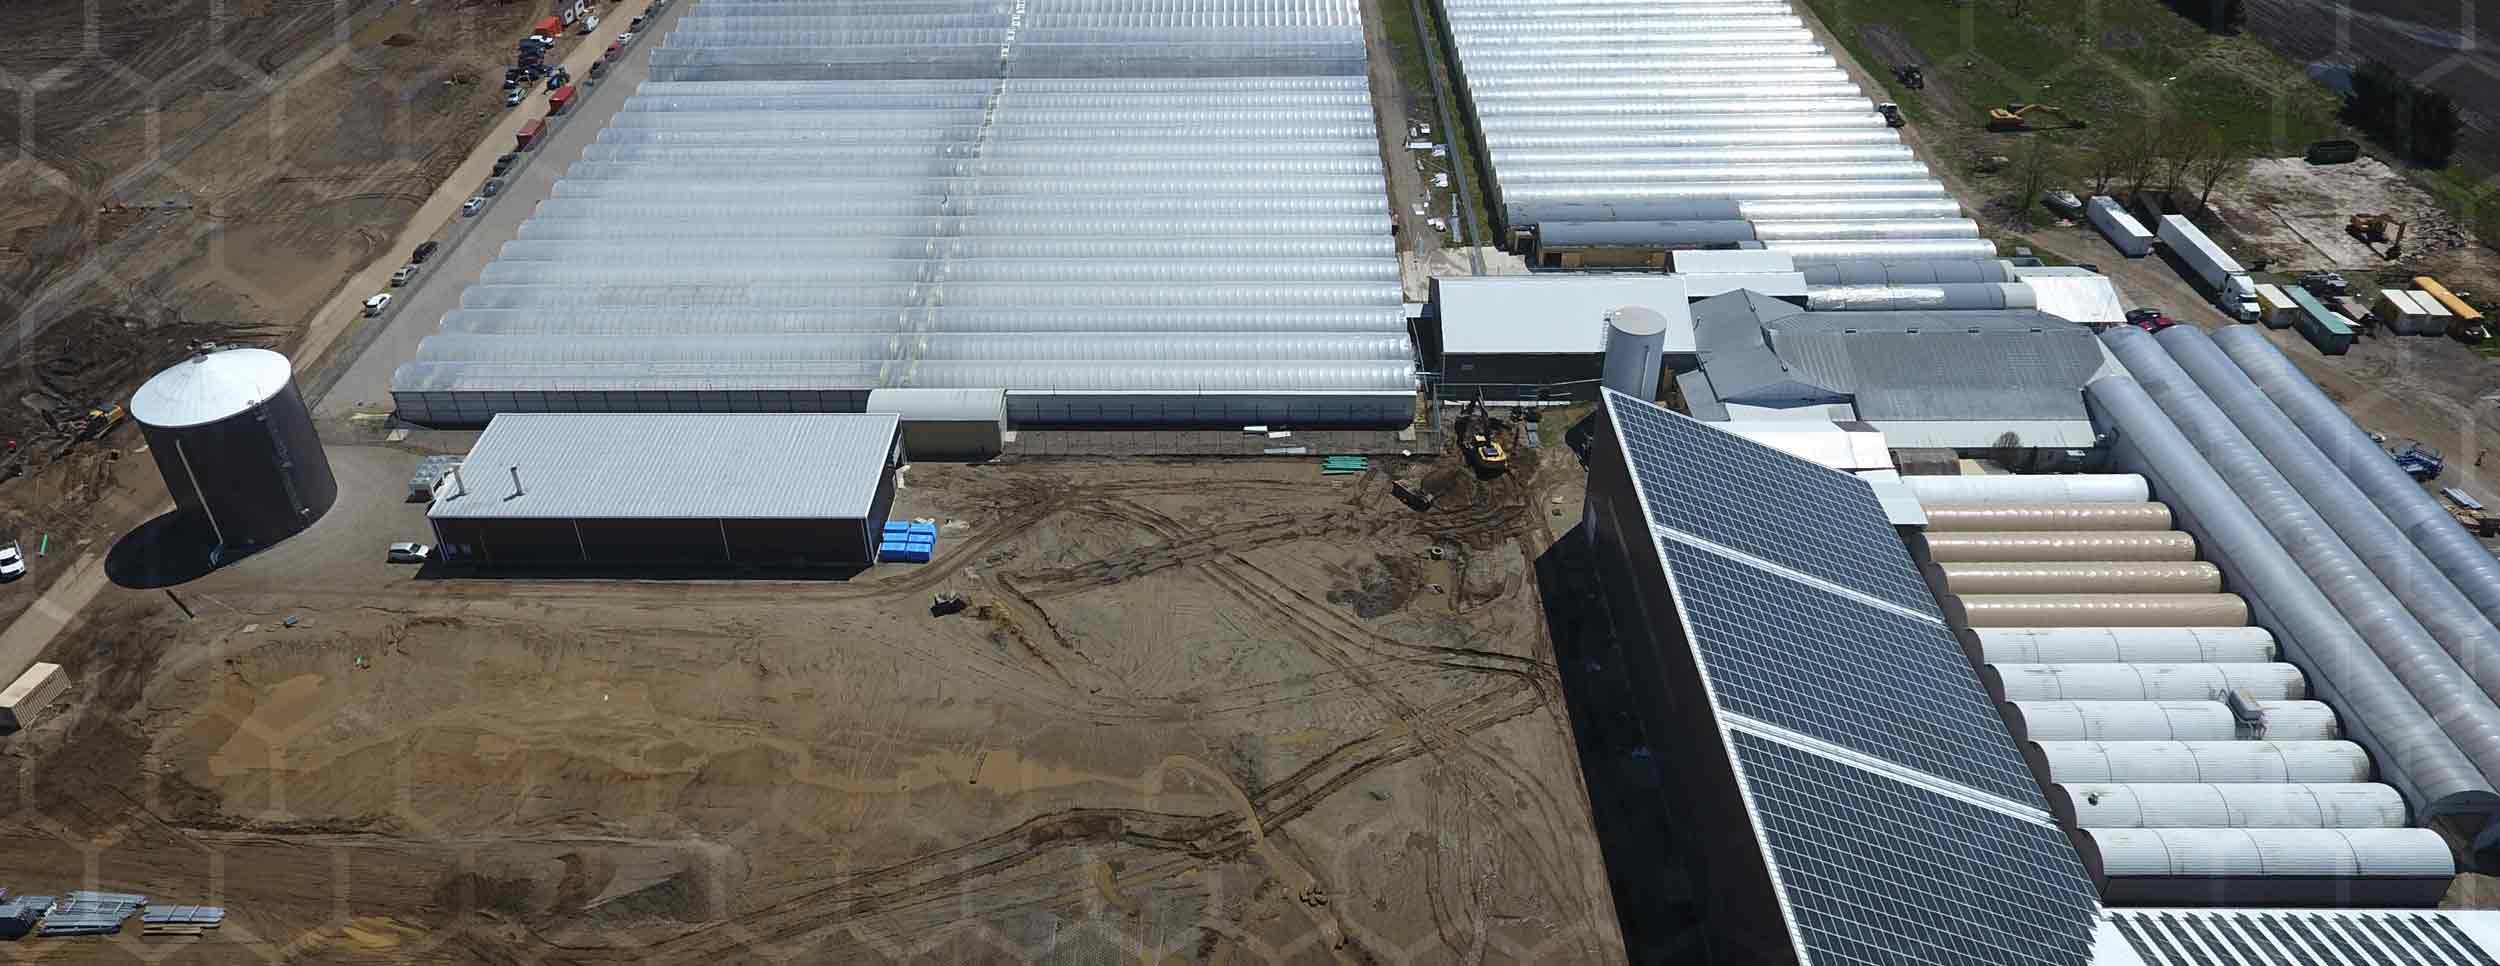 Overhead Aerial View of the WeedMD Facility, large Greenhouse operation